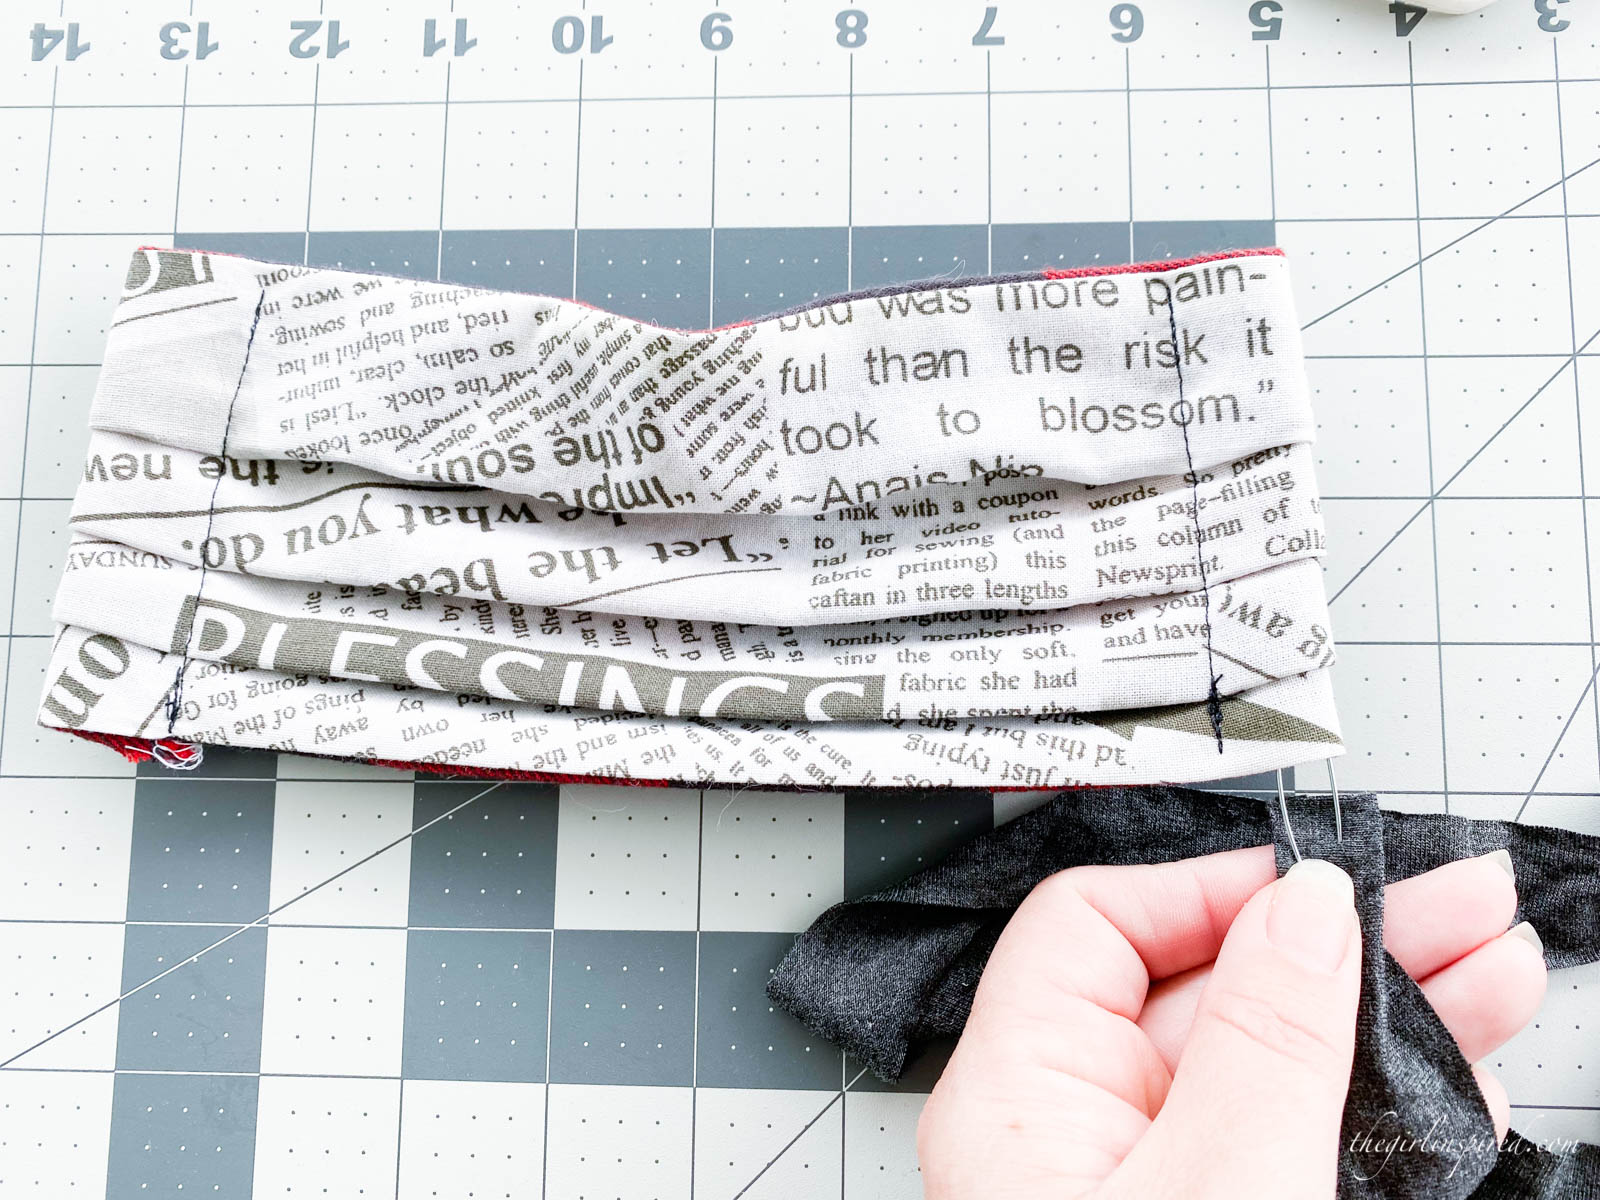 safety pin and strap inserted into side of serged fabric mask on rulered mat